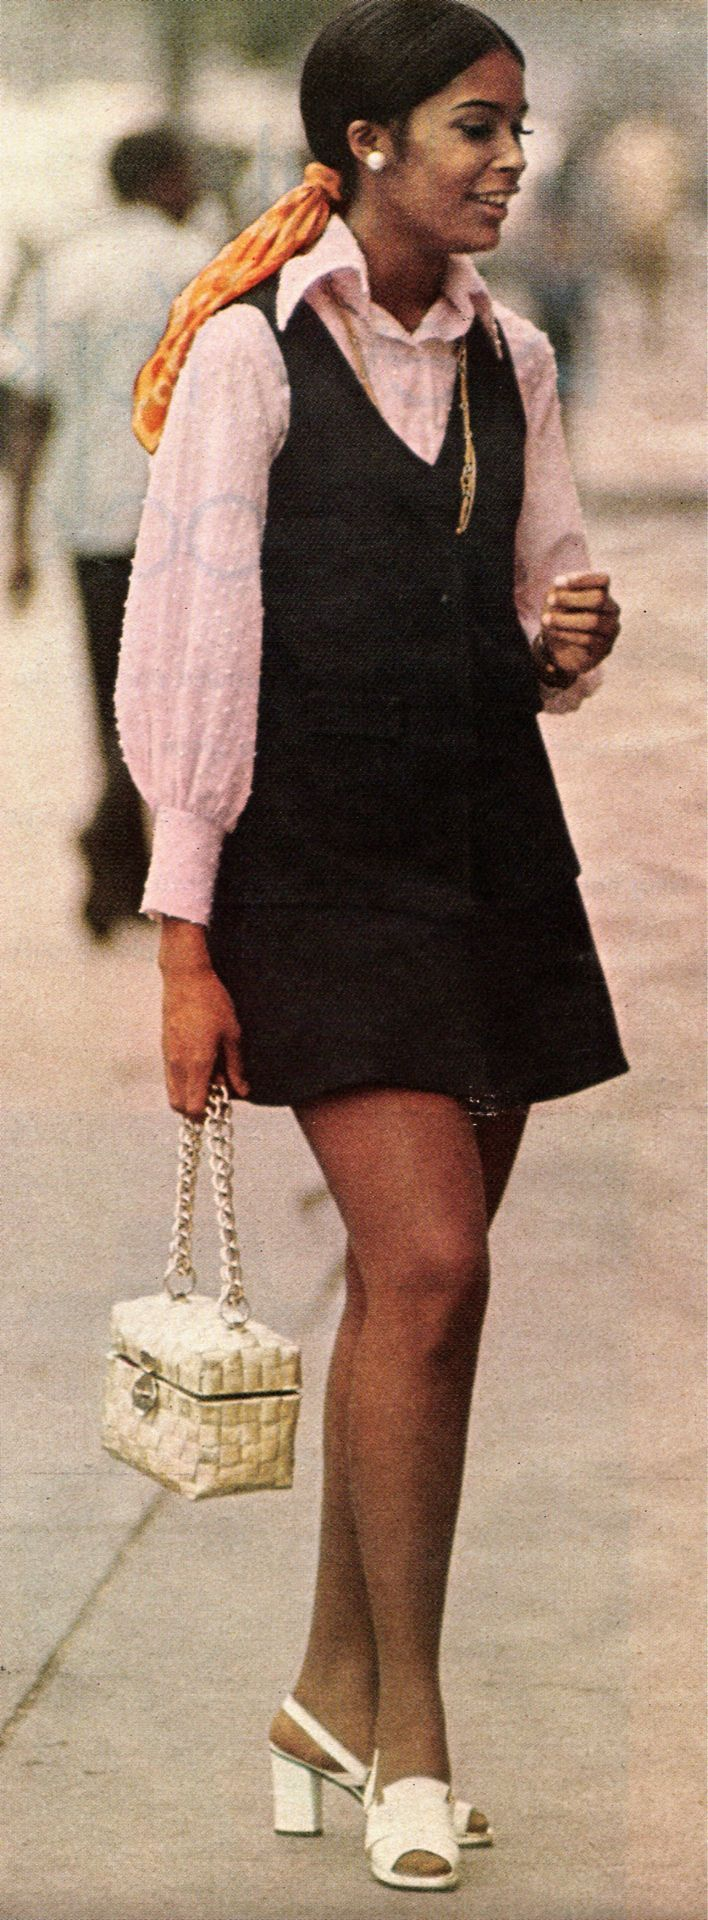 follow me @cushite 1970's Fashion. My 3rd grade teacher looked and dressed just like this!